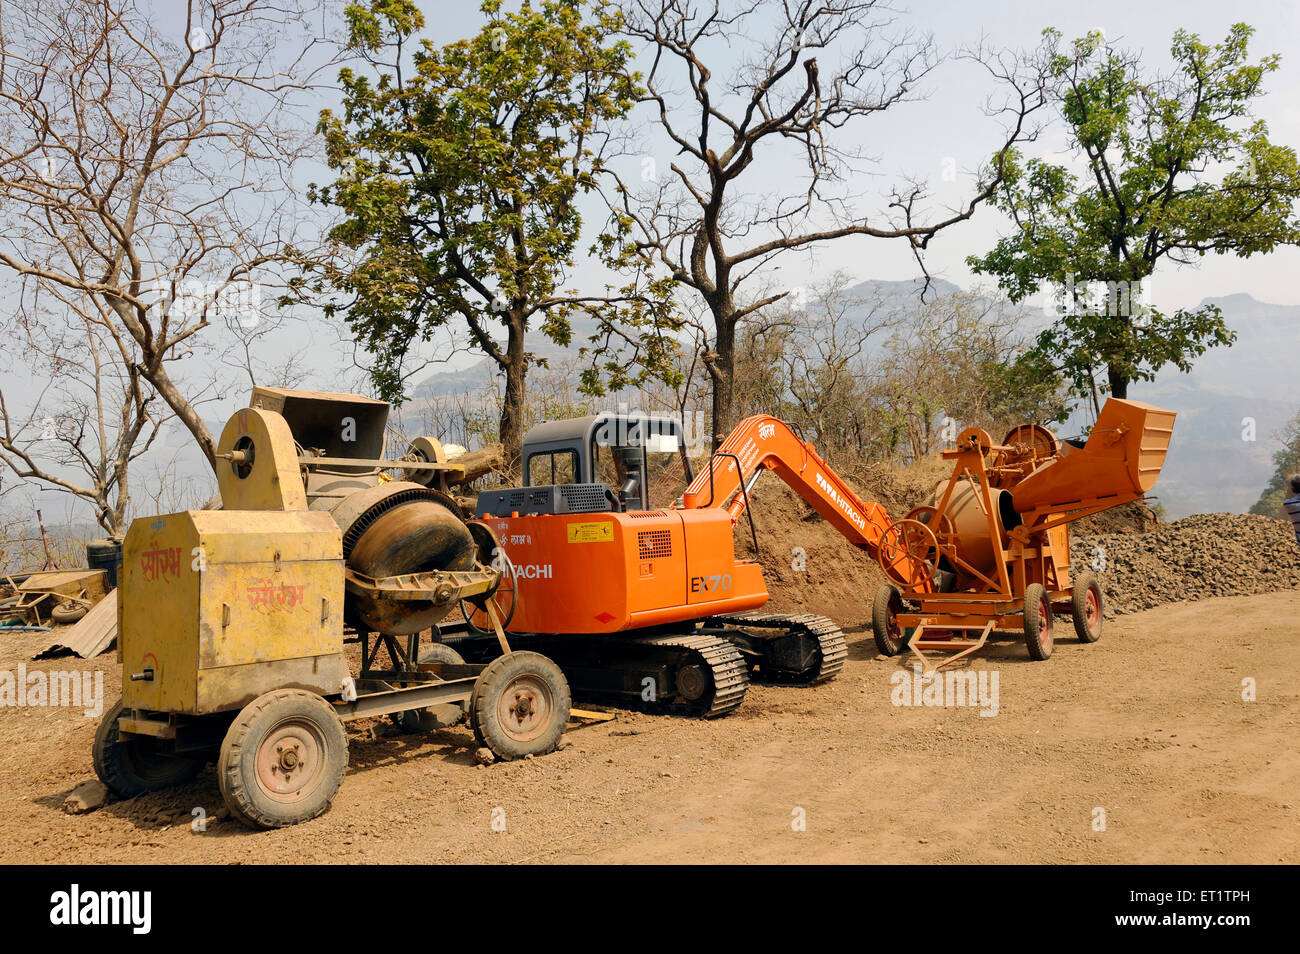 construction machinery at Maharashtra india Asia - Stock Image